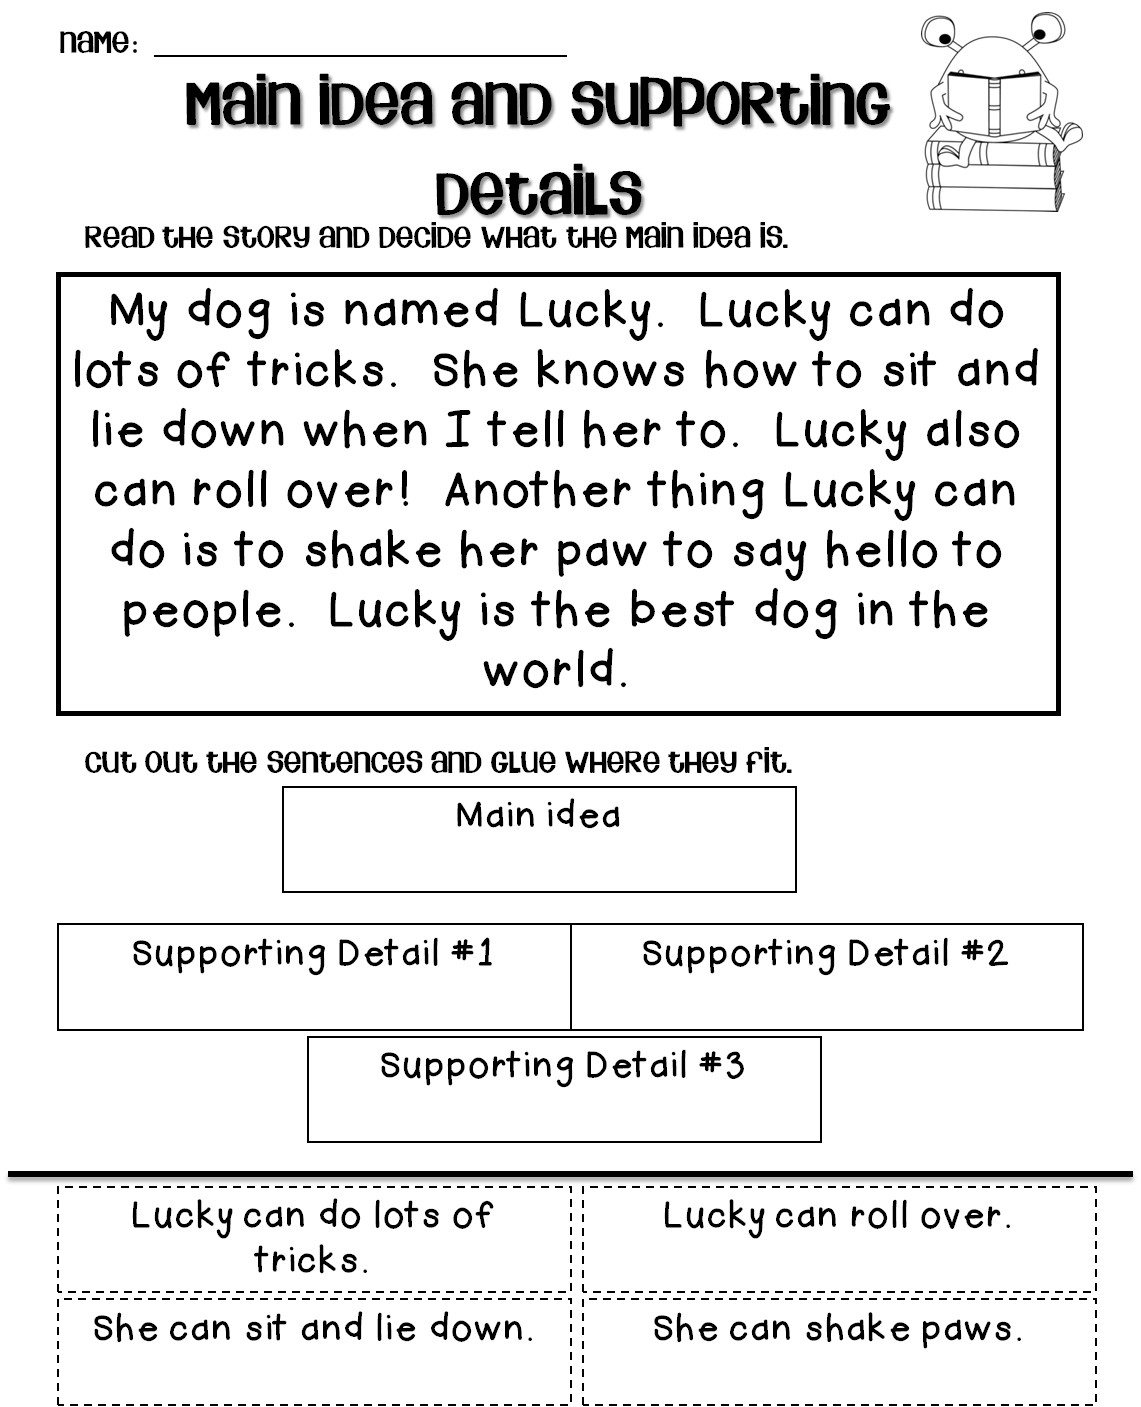 3rd Grade Main Idea Worksheets Multiplication Flash Games Spanish Frequency Words